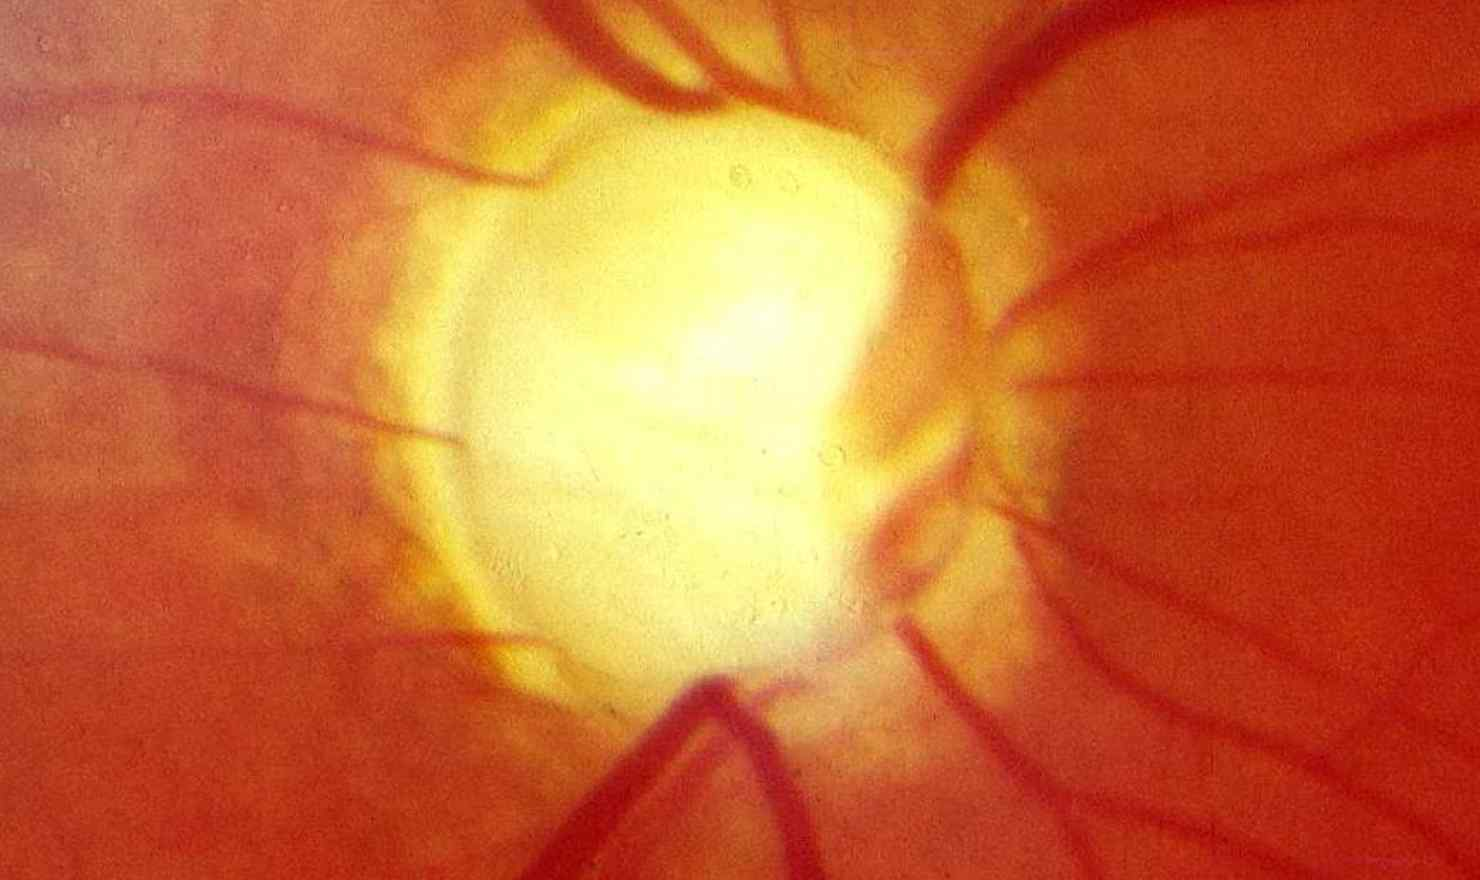 Implant To Measure Pressure And Help Treat Glaucoma